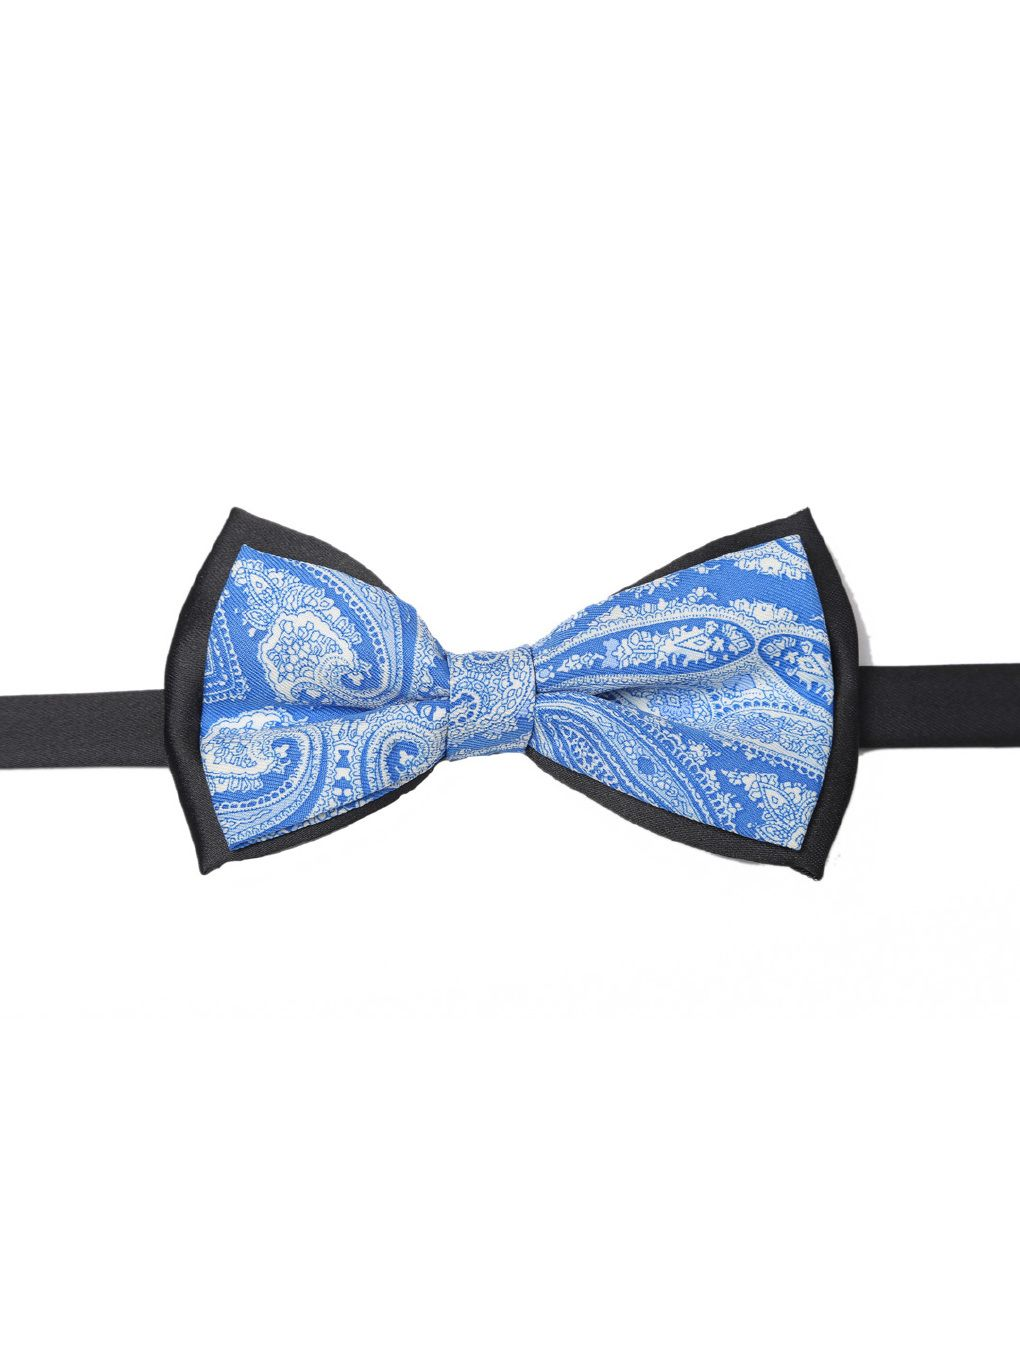 a4341079dbd1 These Bow Neck-ties by Tossido are a stylish addition that provide a subtle,